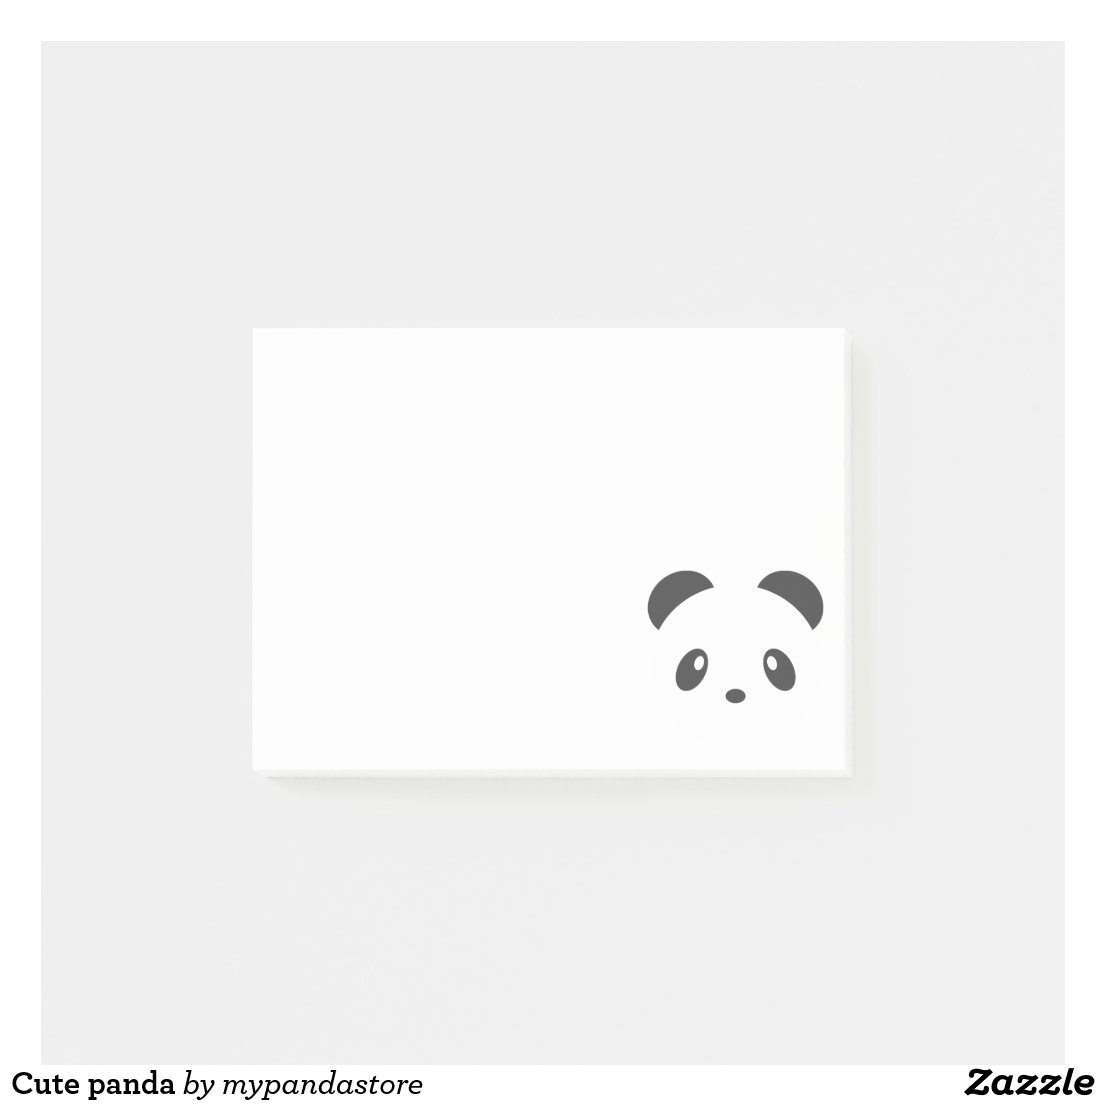 Cute panda post it notes